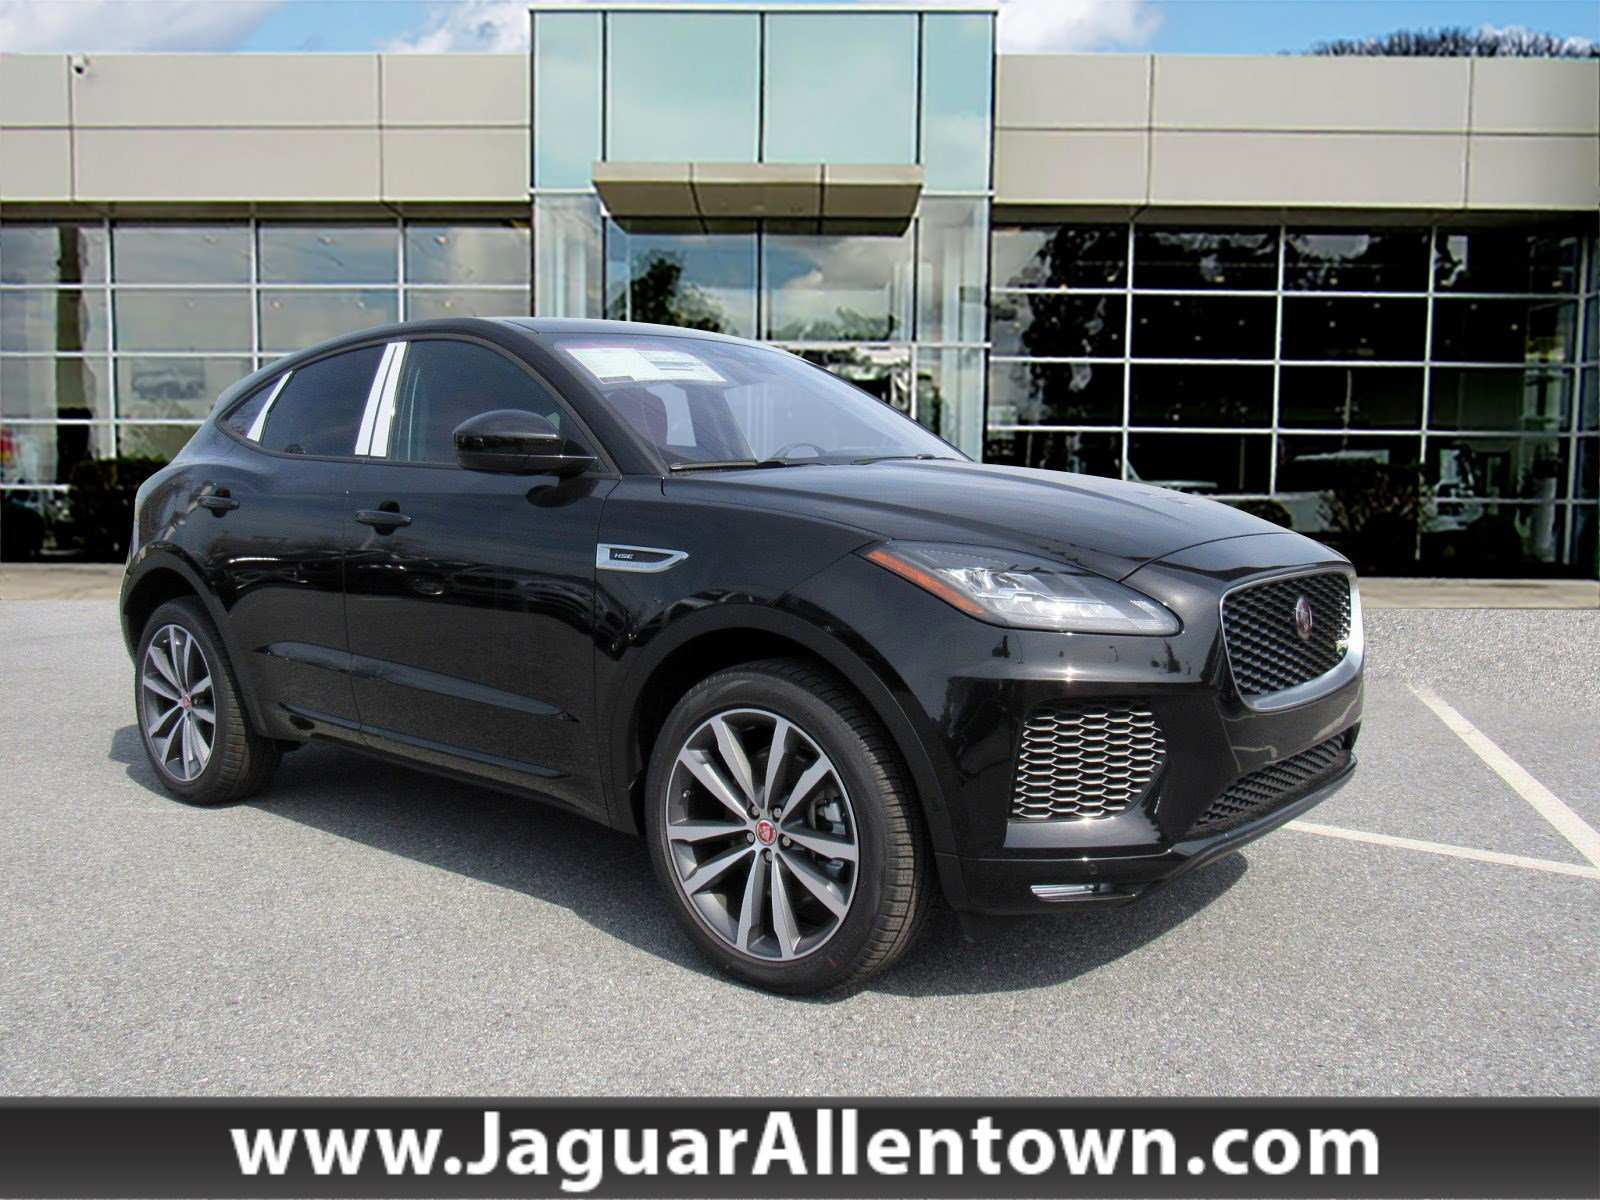 15 All New E Pace Jaguar 2019 Exterior and Interior